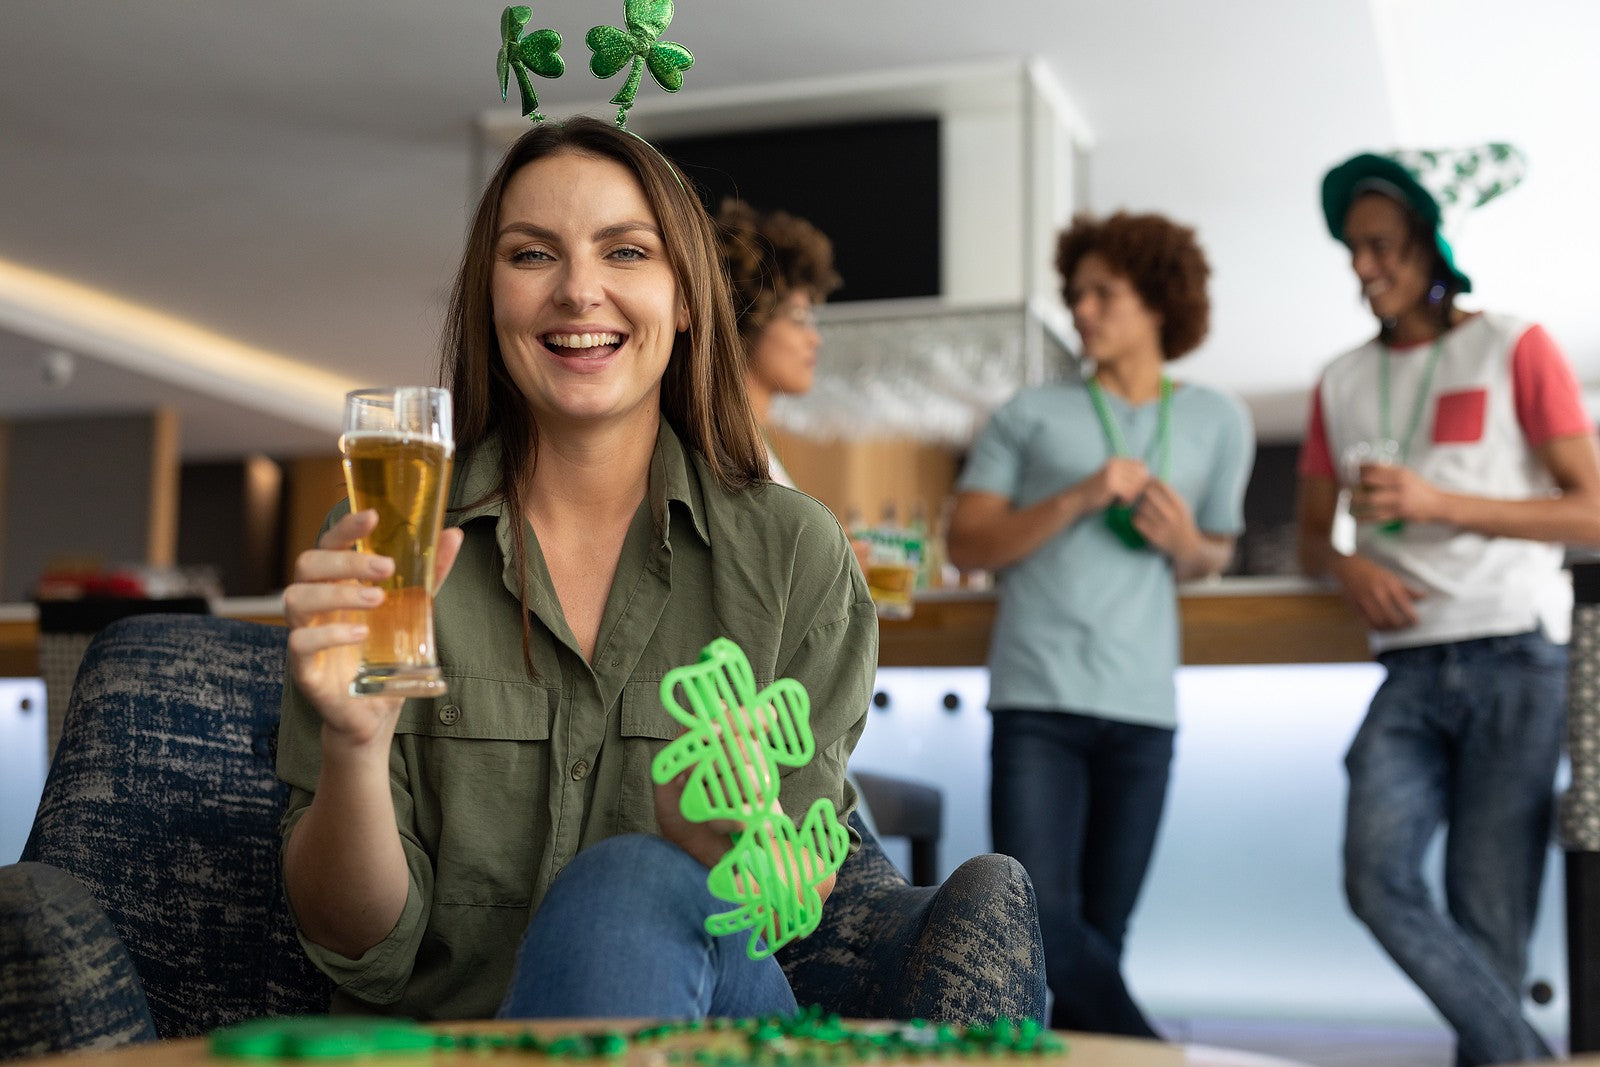 6 Fun Ways to Celebrate St. Patrick's Day